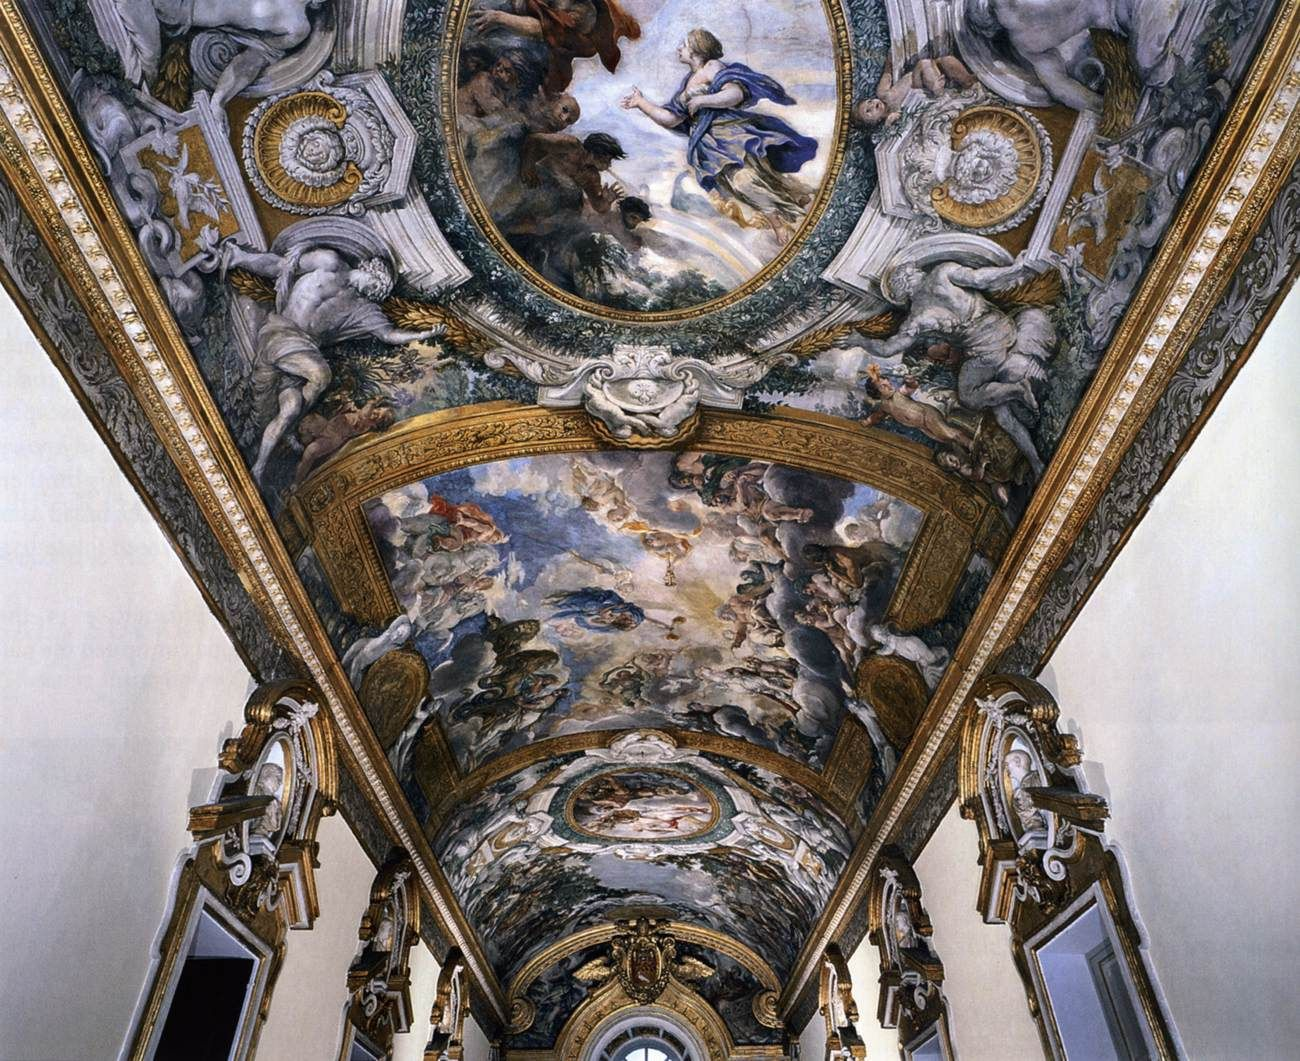 CORTONA, Pietro da Italian painter/architect, Roman school (b. 1596, Cortona, d. 1669, Roma)  Ceiling of the Galleria Pamphilj 1651-54 Fresco Palazzo Pamphilj, Rome